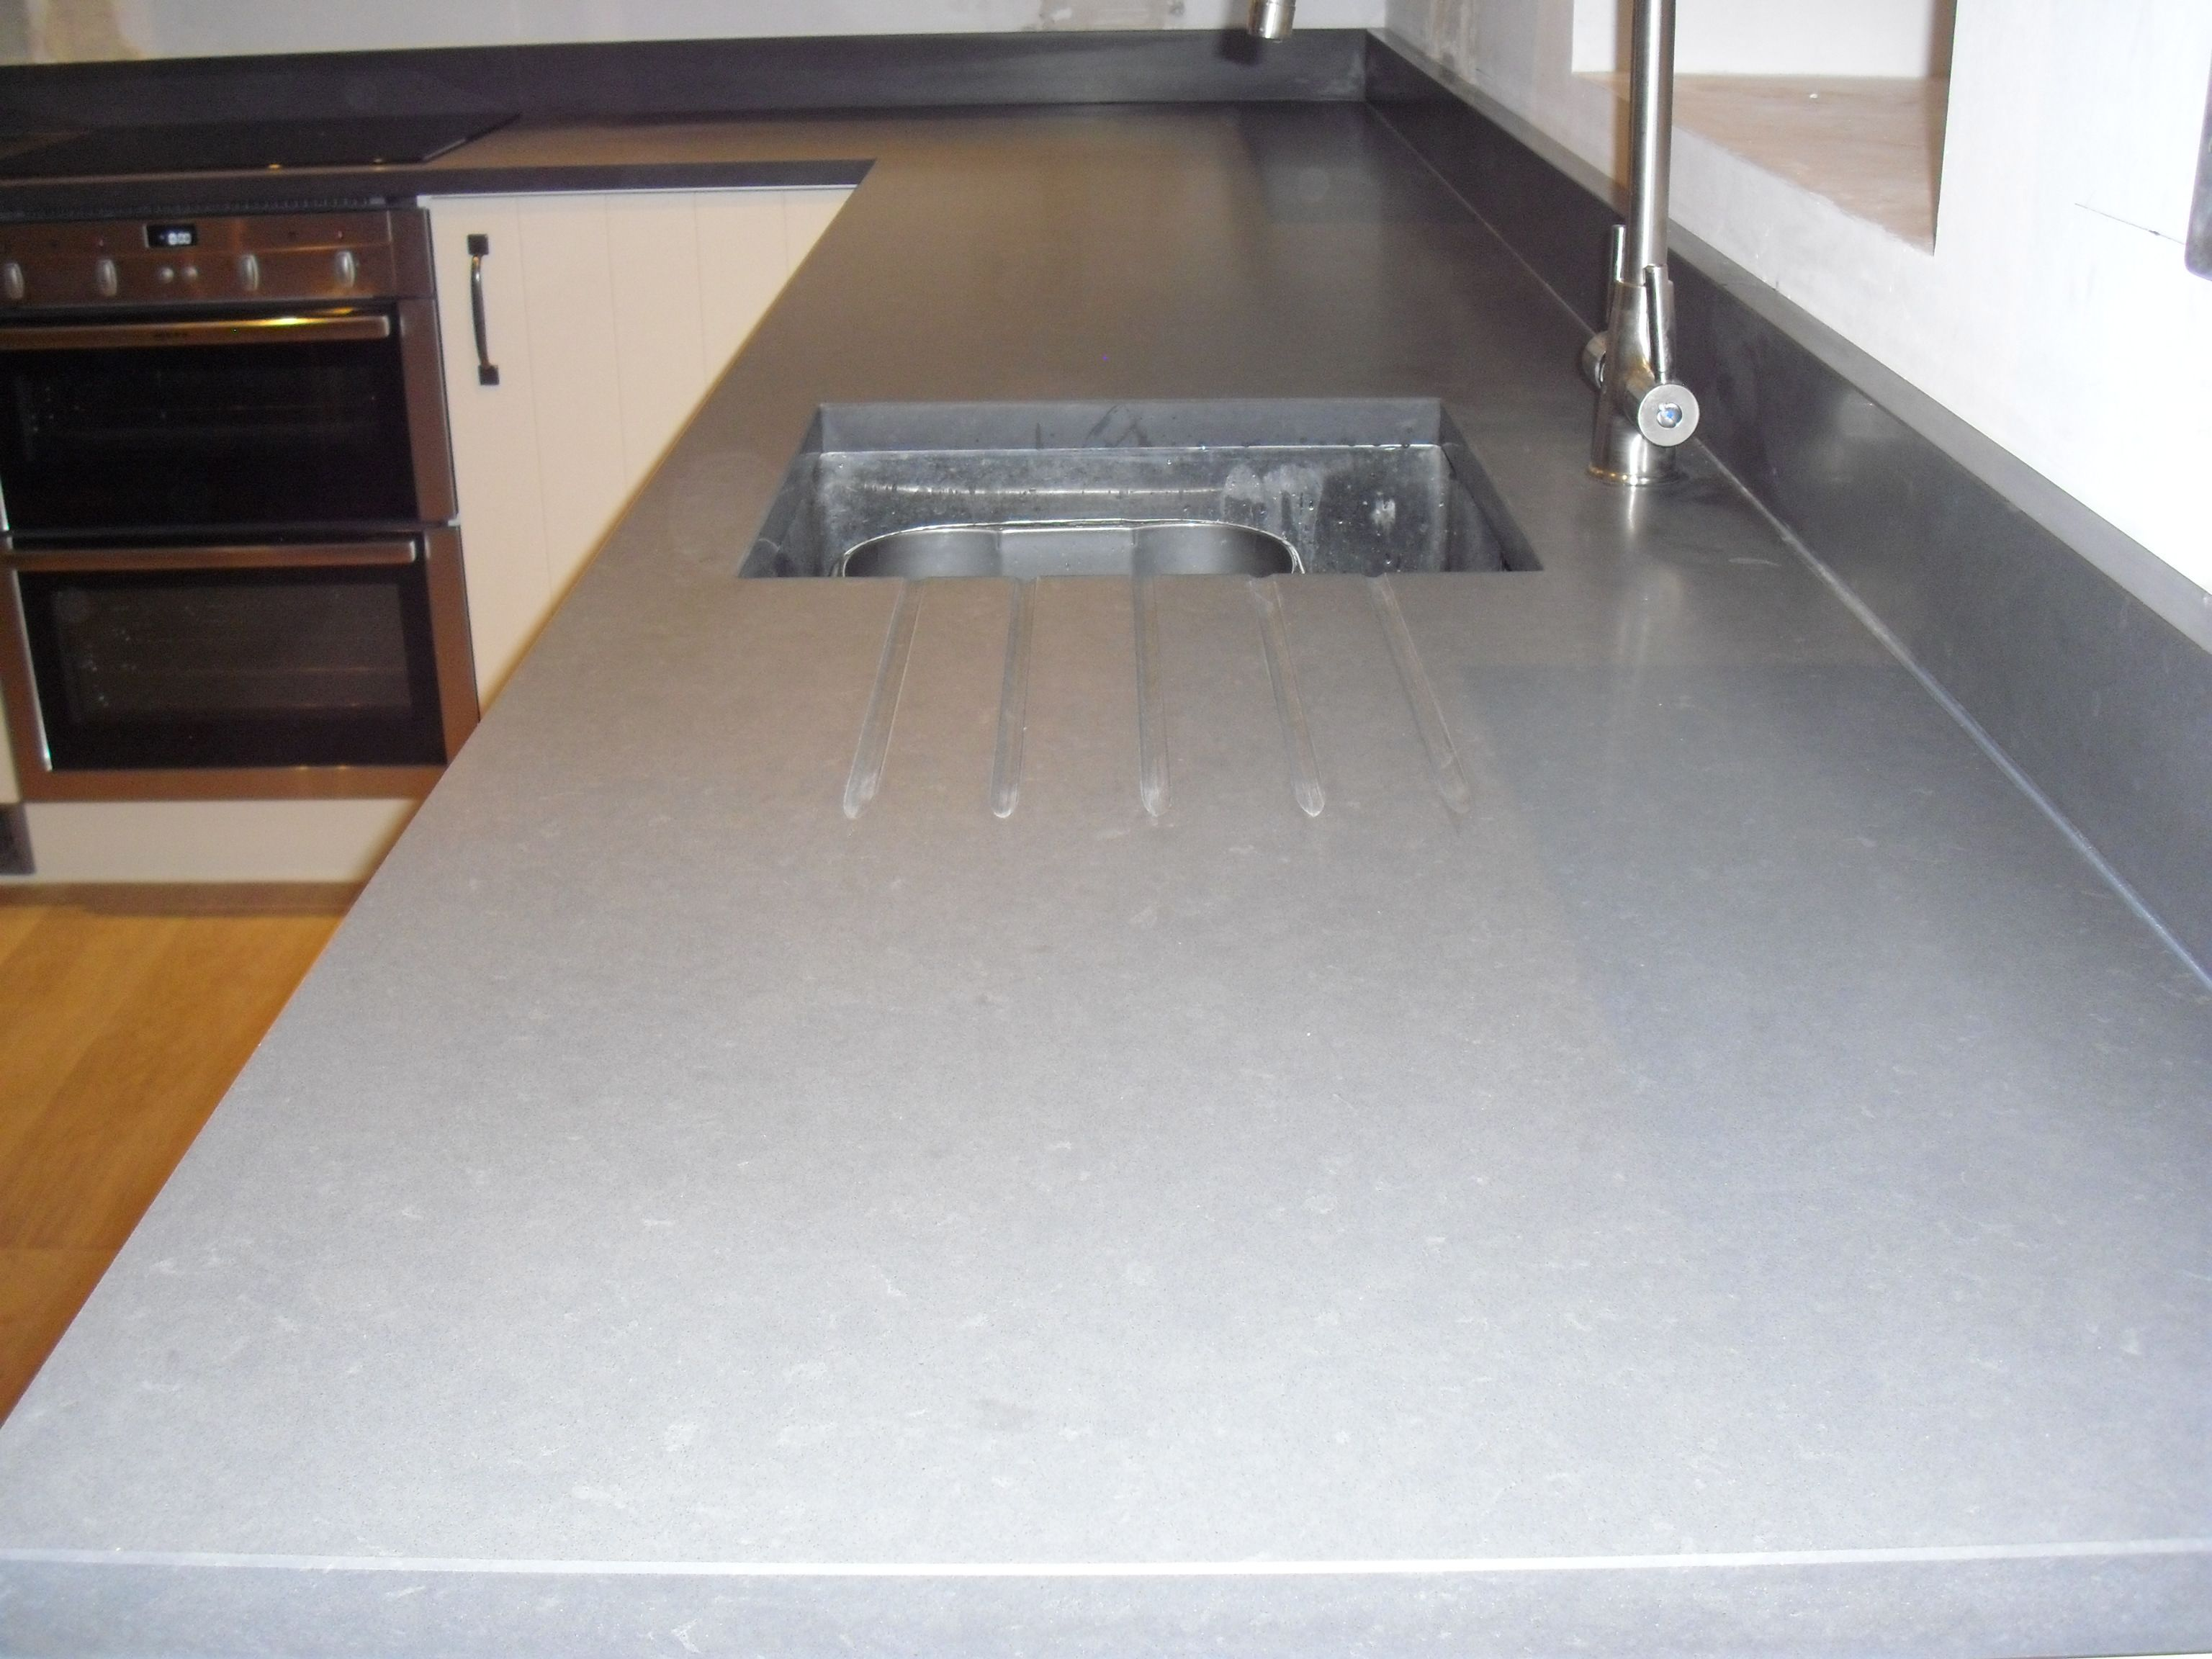 Honed Quartz Countertops This Raven Quartz In A Honed Finish By Caesarstone Looks